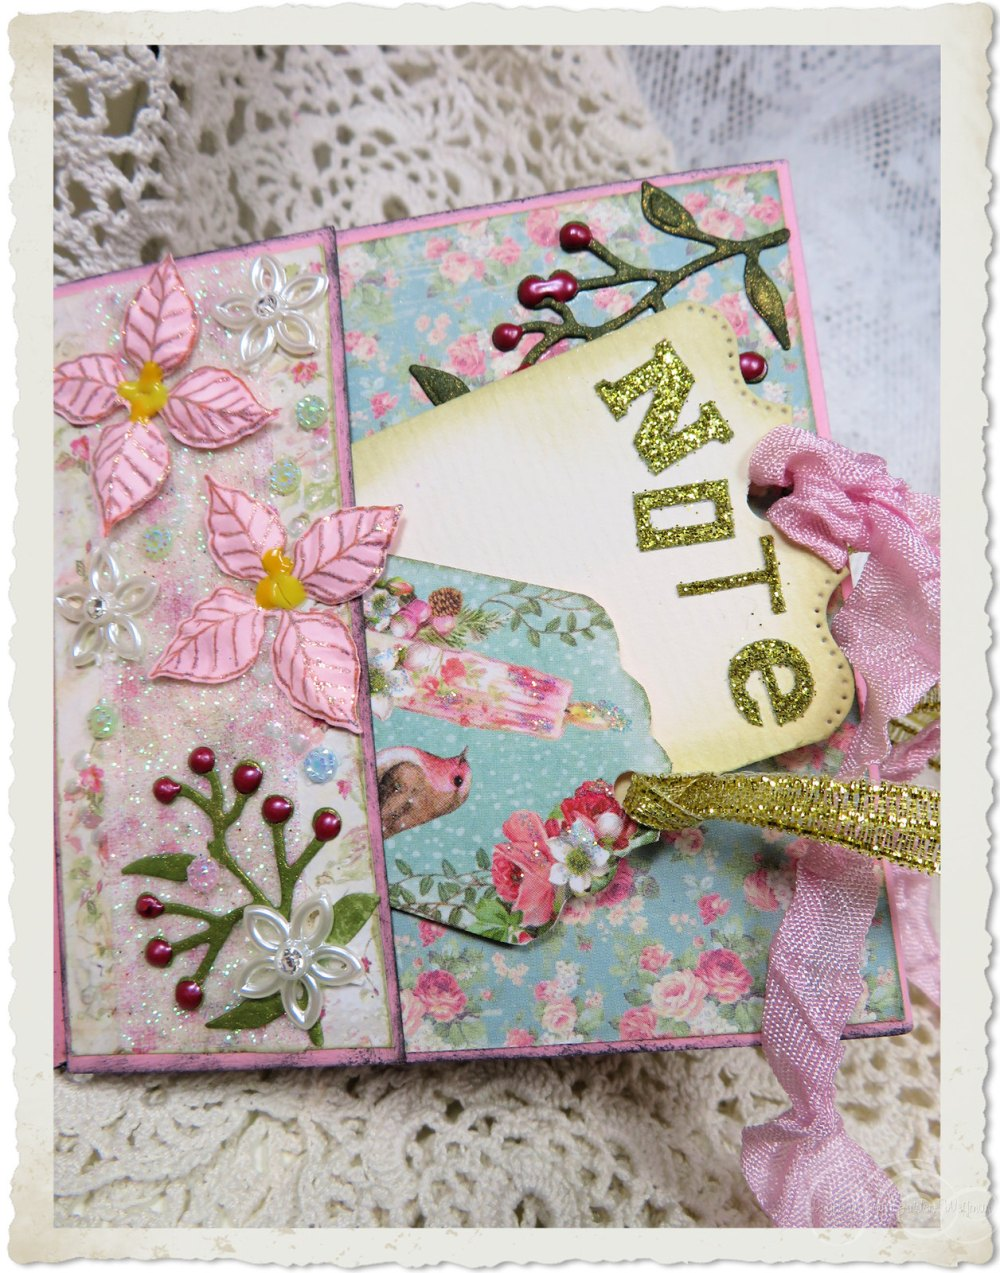 Pocket with notes and poinsettia flower